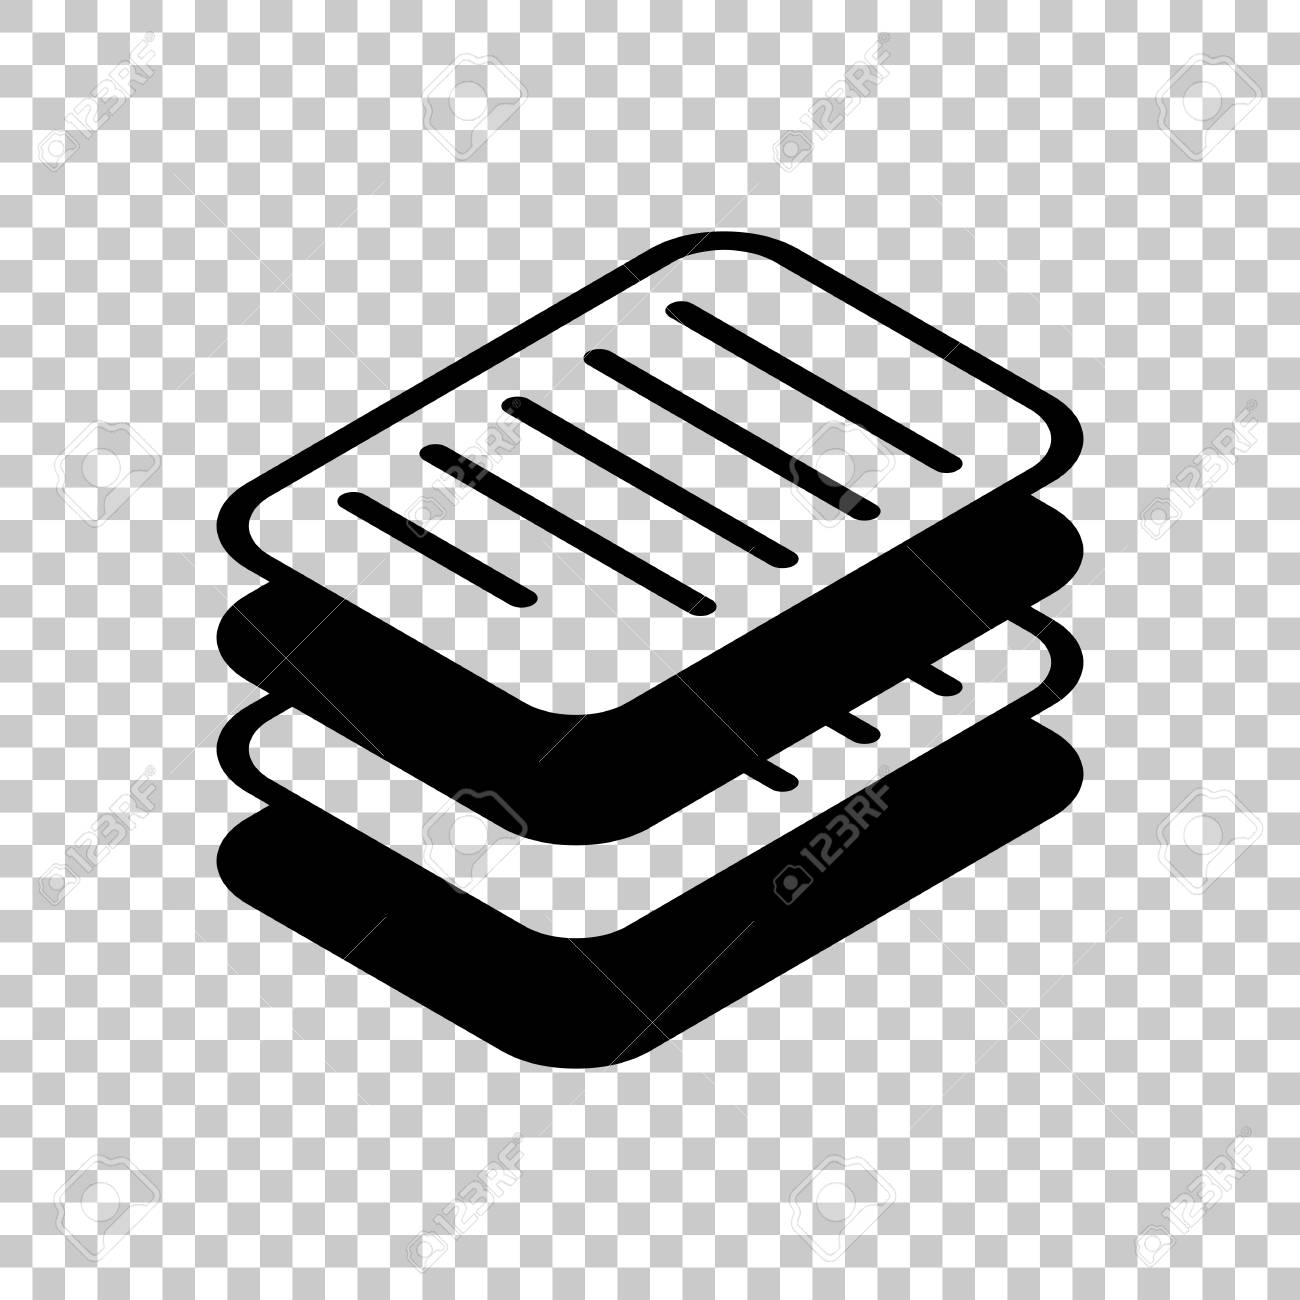 stack of papers, simple symbol or icon. on transparent background